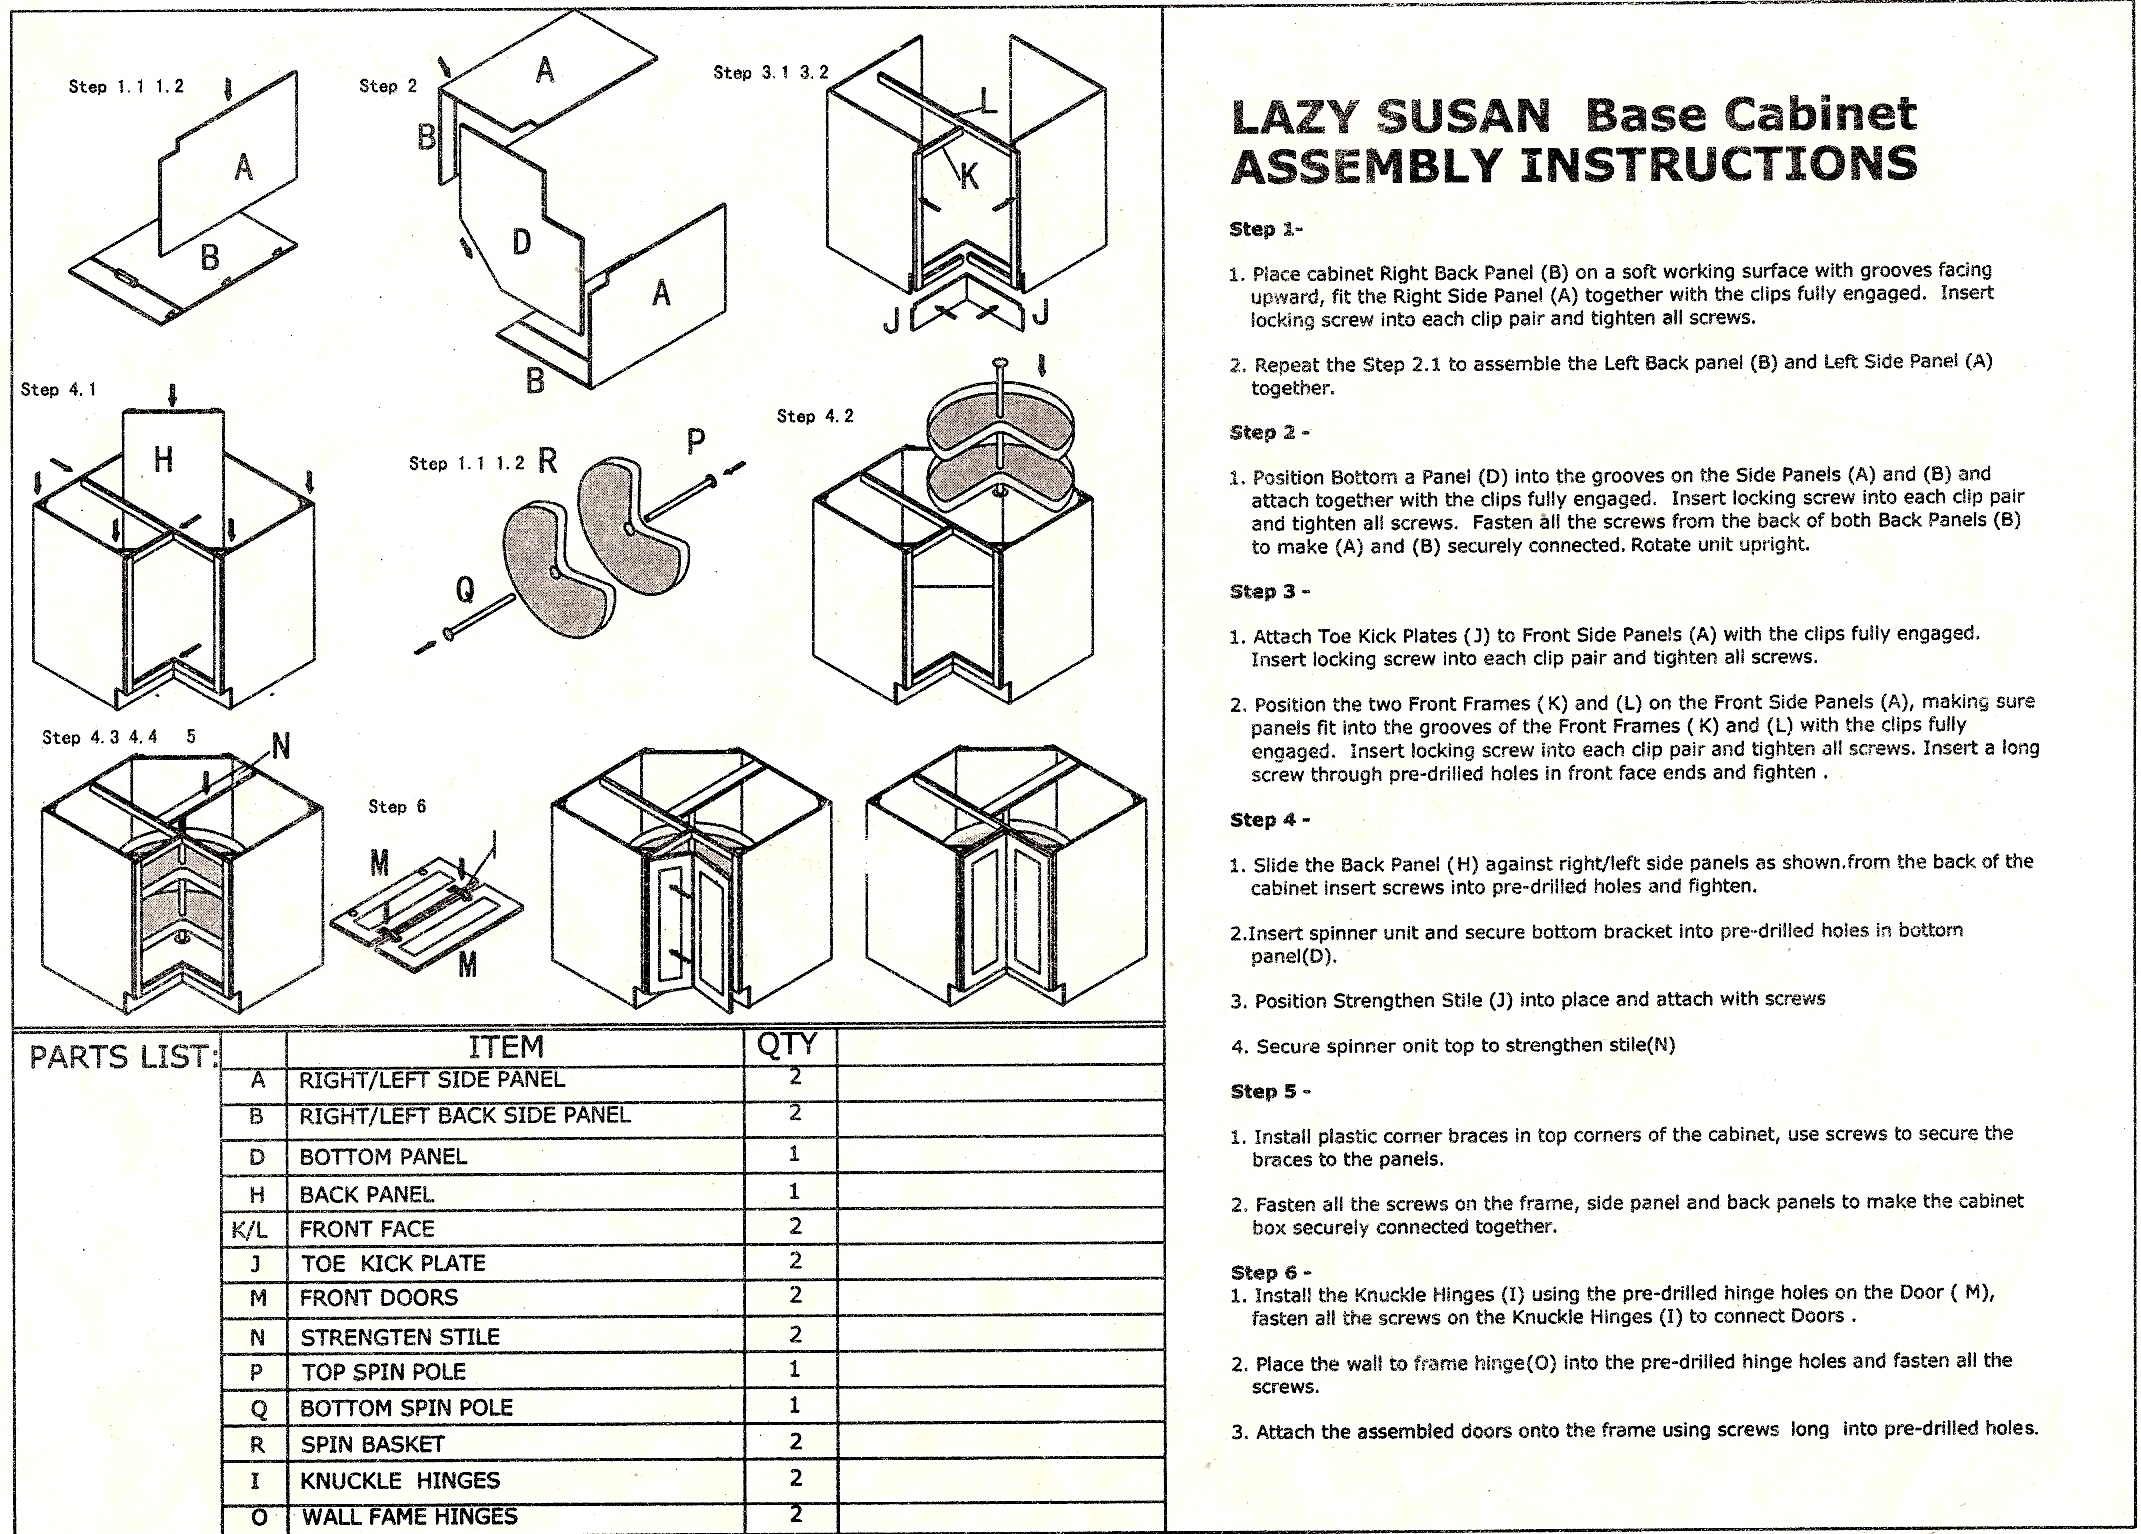 RTA Lazy susan assembly instruction